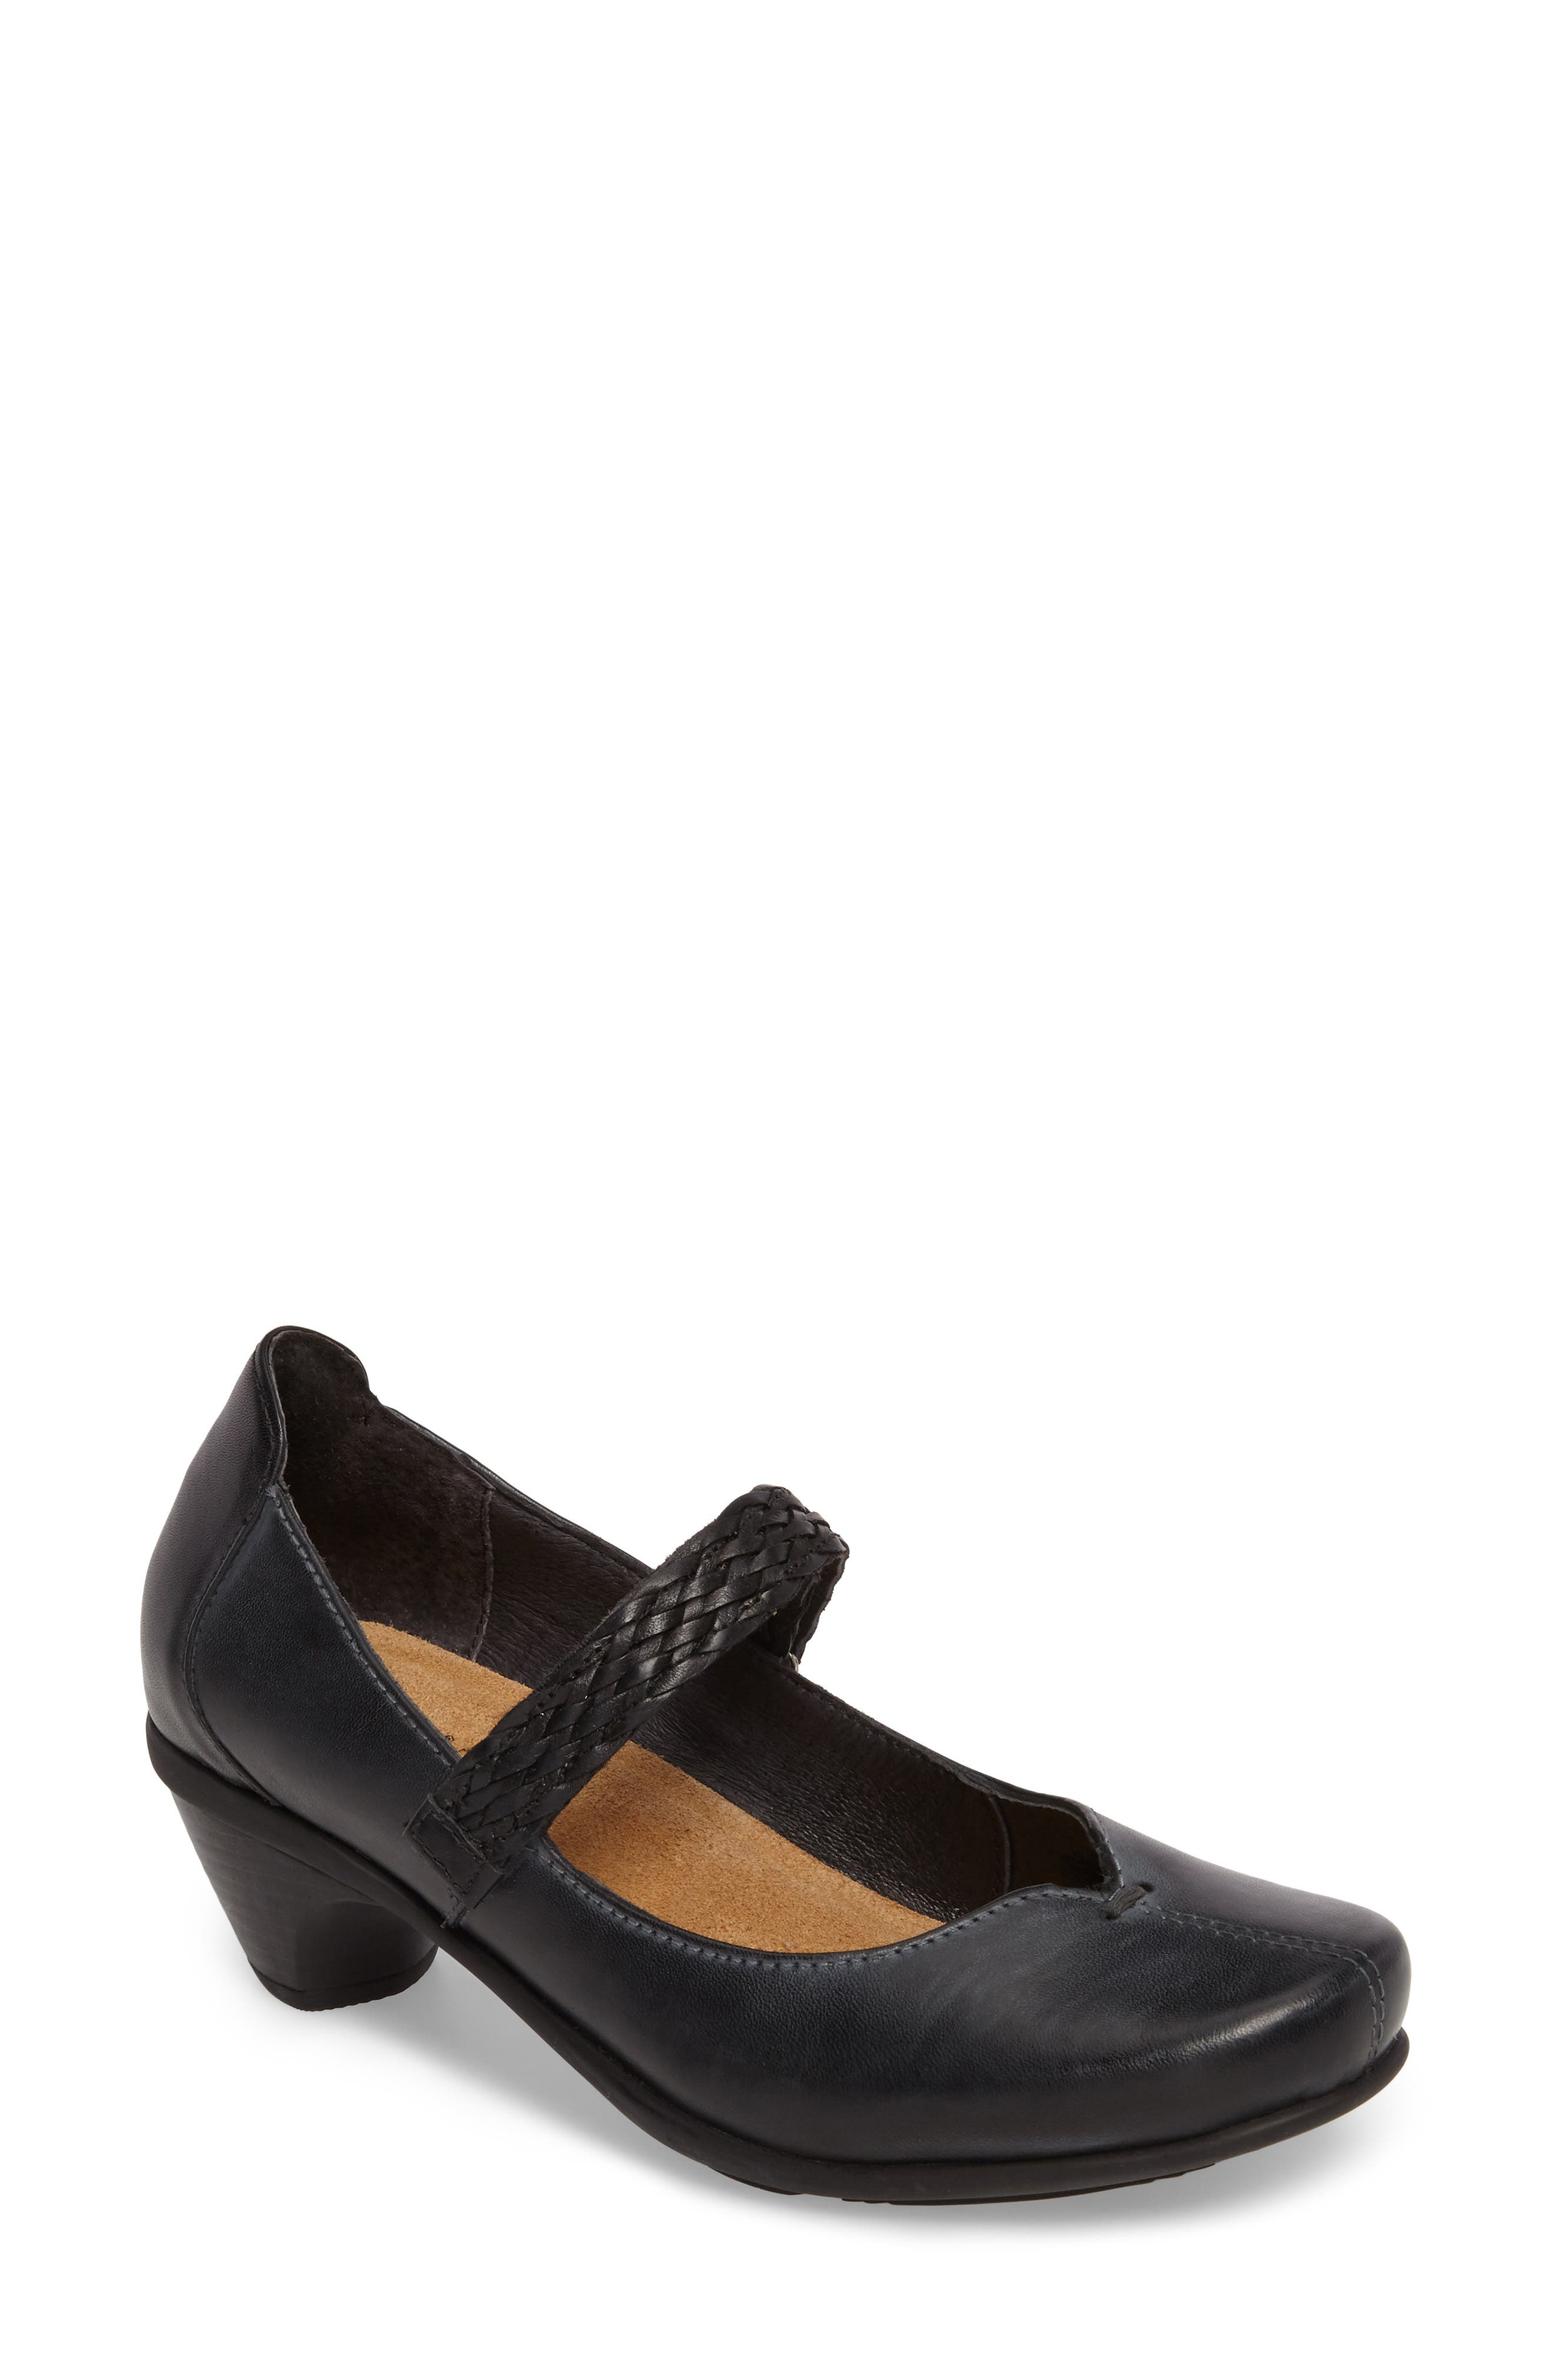 Naot Forward Mary Jane Pump (Women)